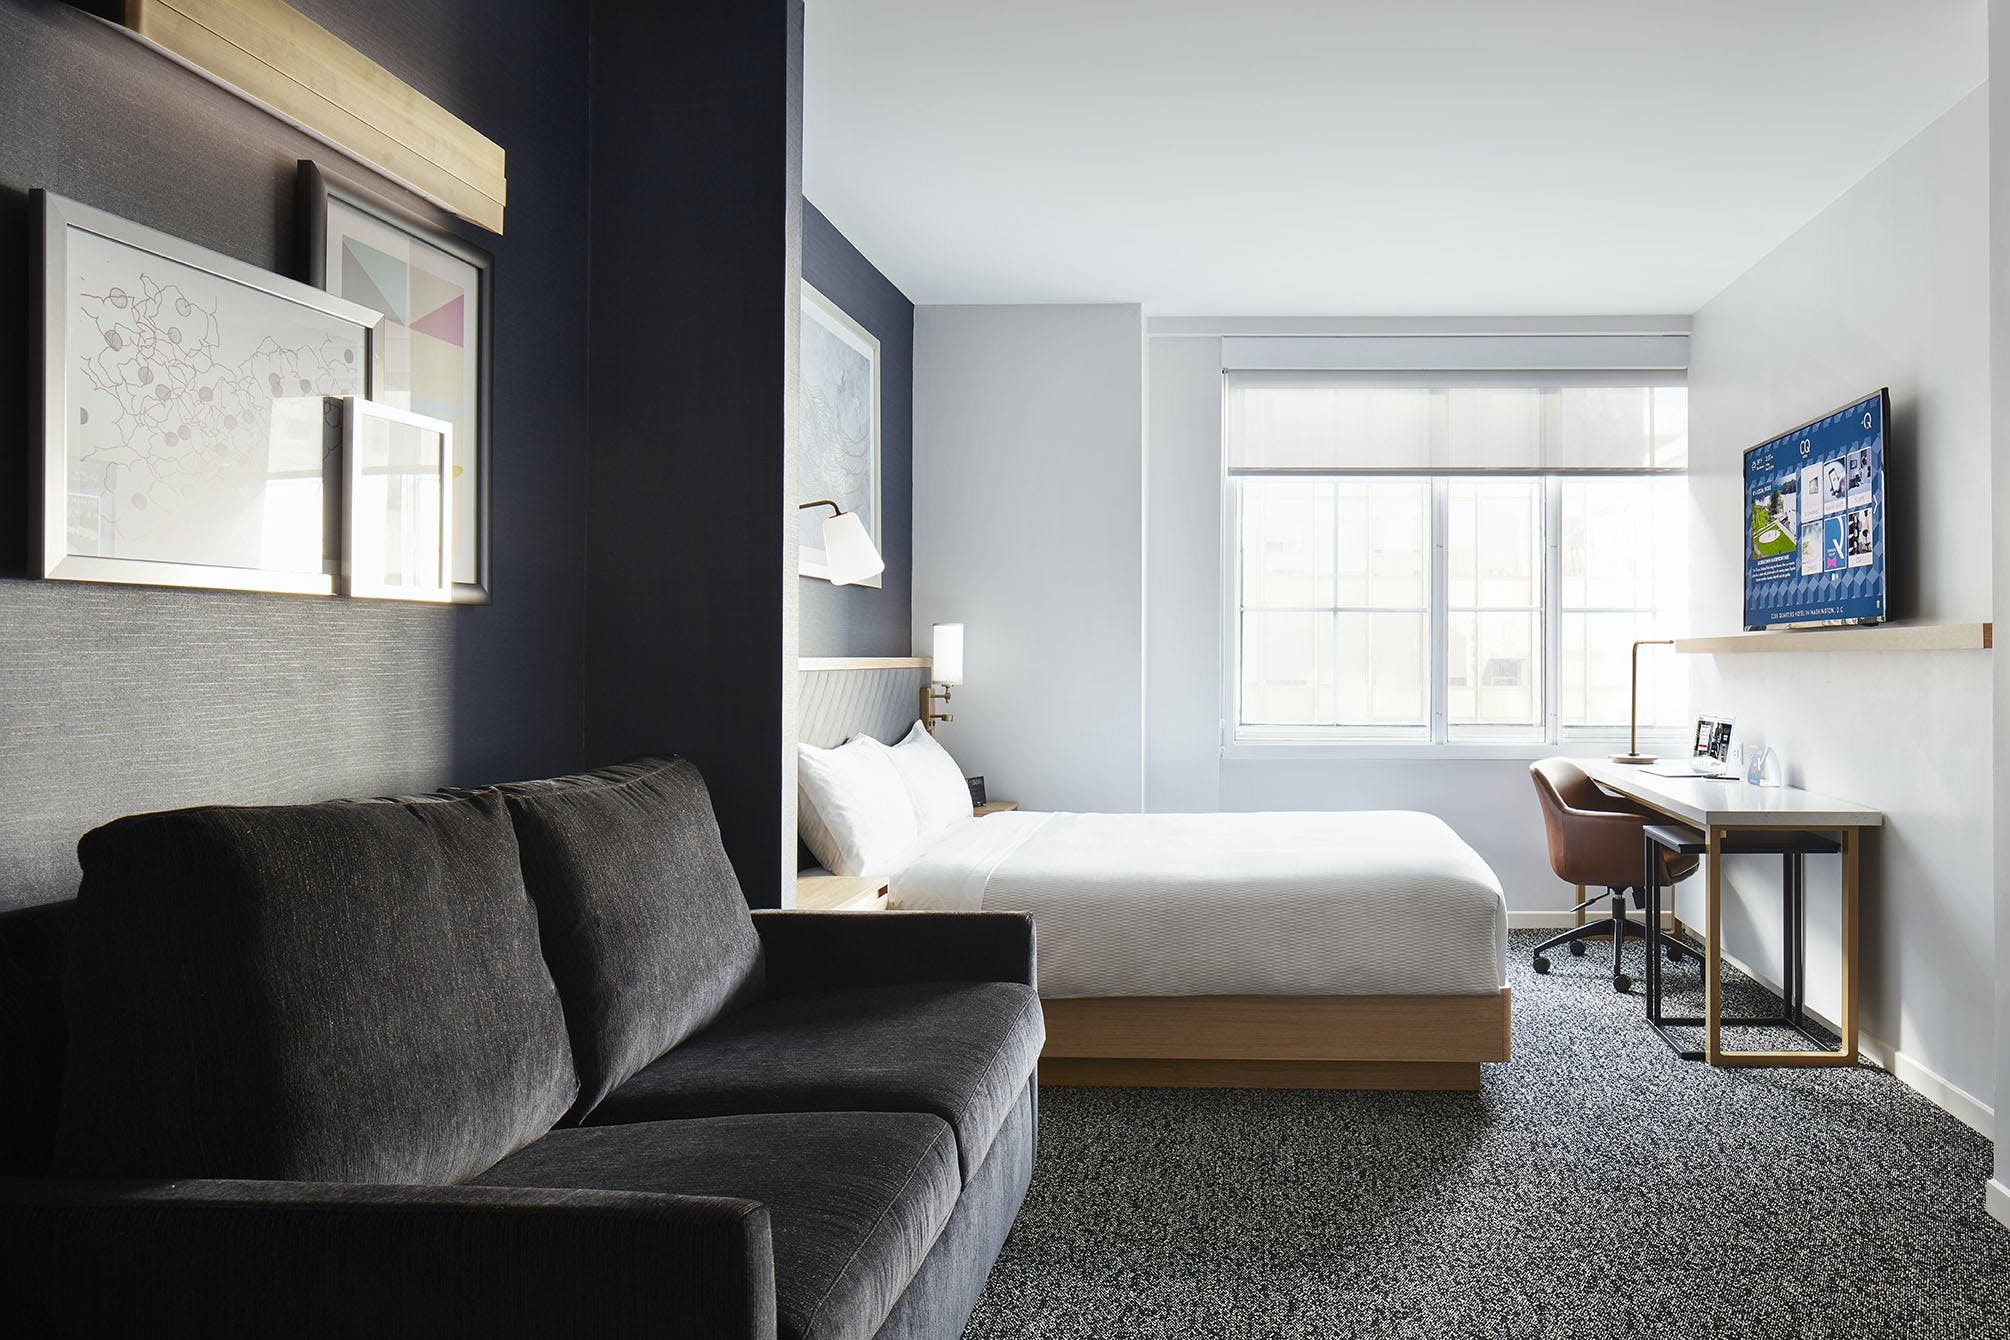 Newly renovated Superior Room at Club Quarters Hotel in Washington DC